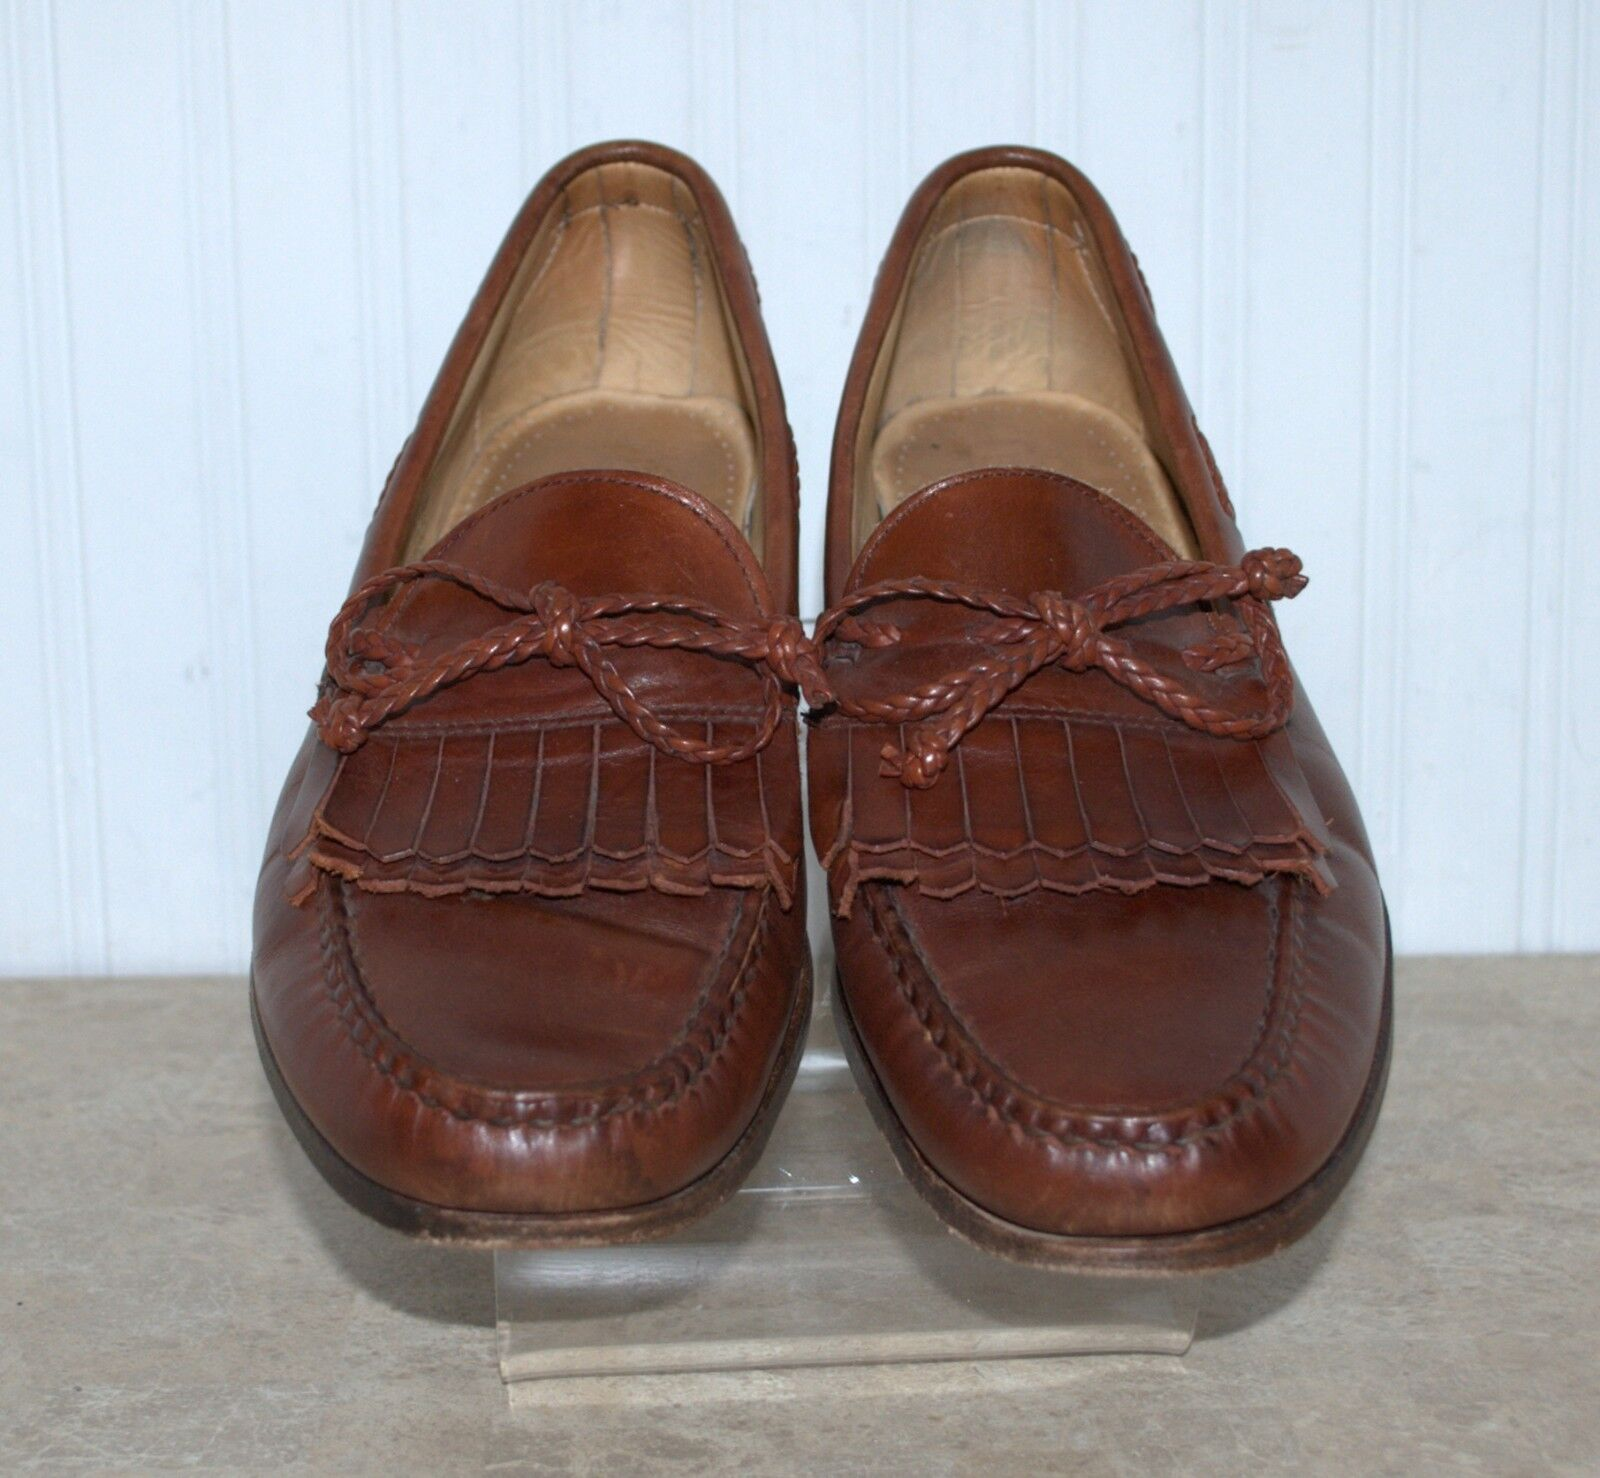 Allen Edmonds Woodstock Woodstock Woodstock 11.5 B Mans Shoes Loafer Chili Brown Pelle Kilt Top fb44f9